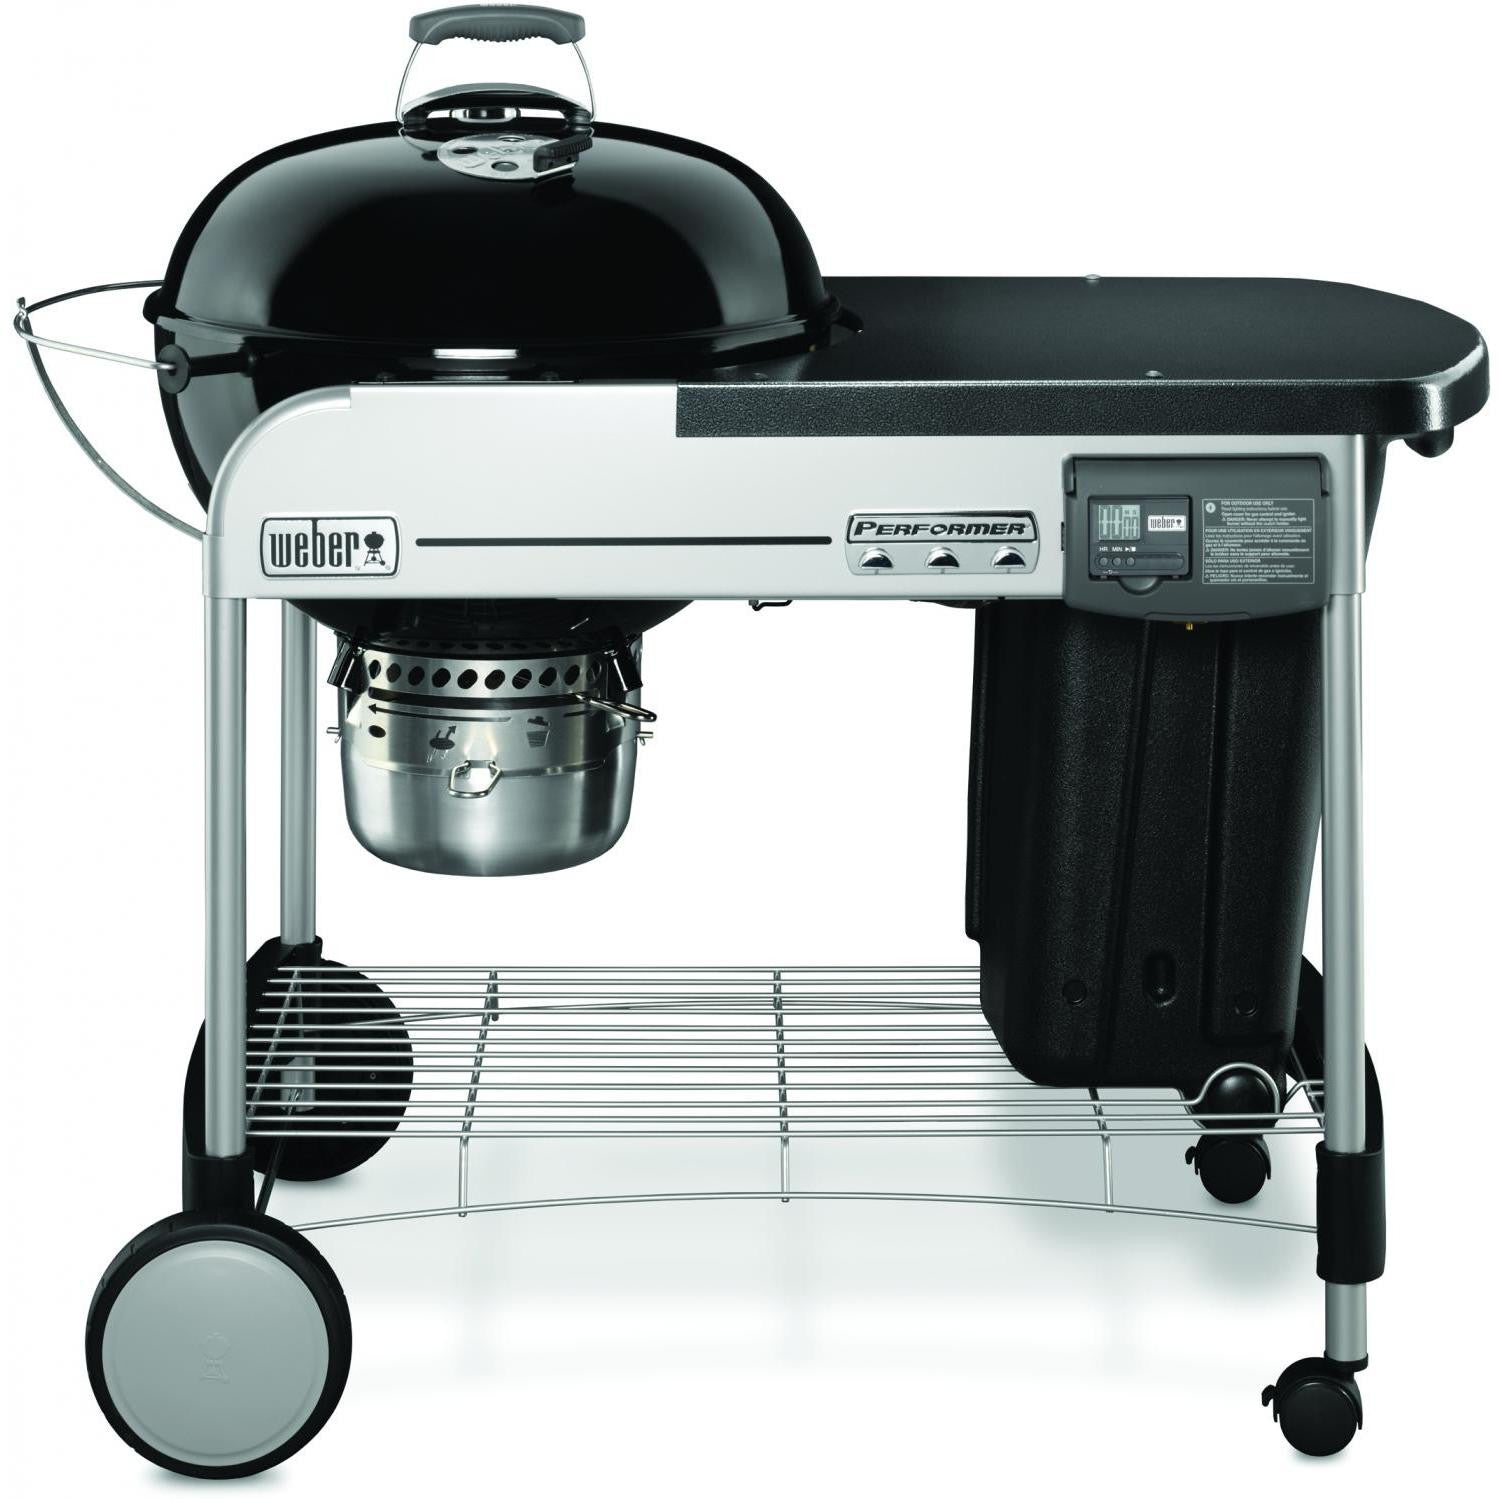 Weber Performer Deluxe 22-Inch Freestanding Charcoal Grill With Touch-N-Go Ignition - Black